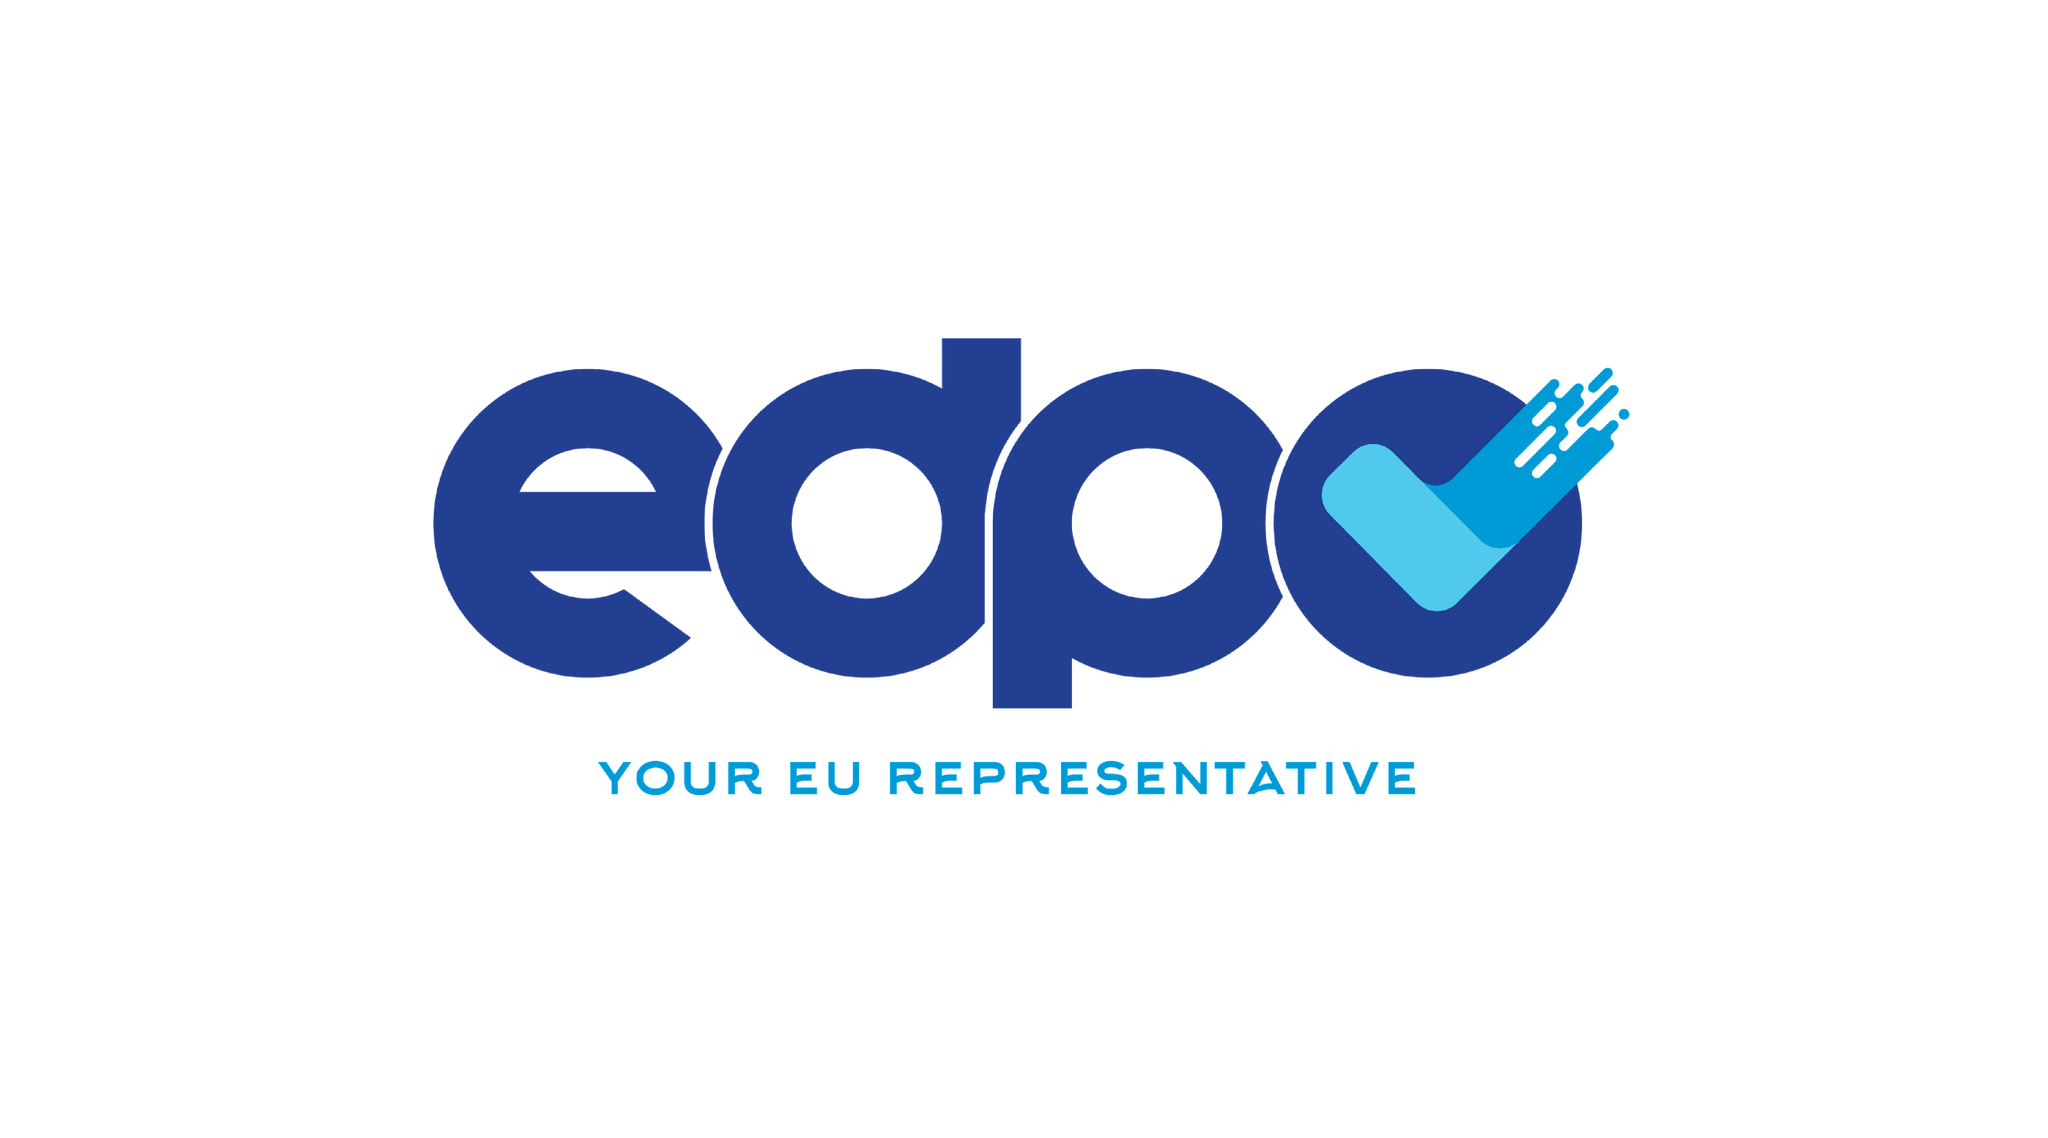 EDPO (European Data Protection Office)